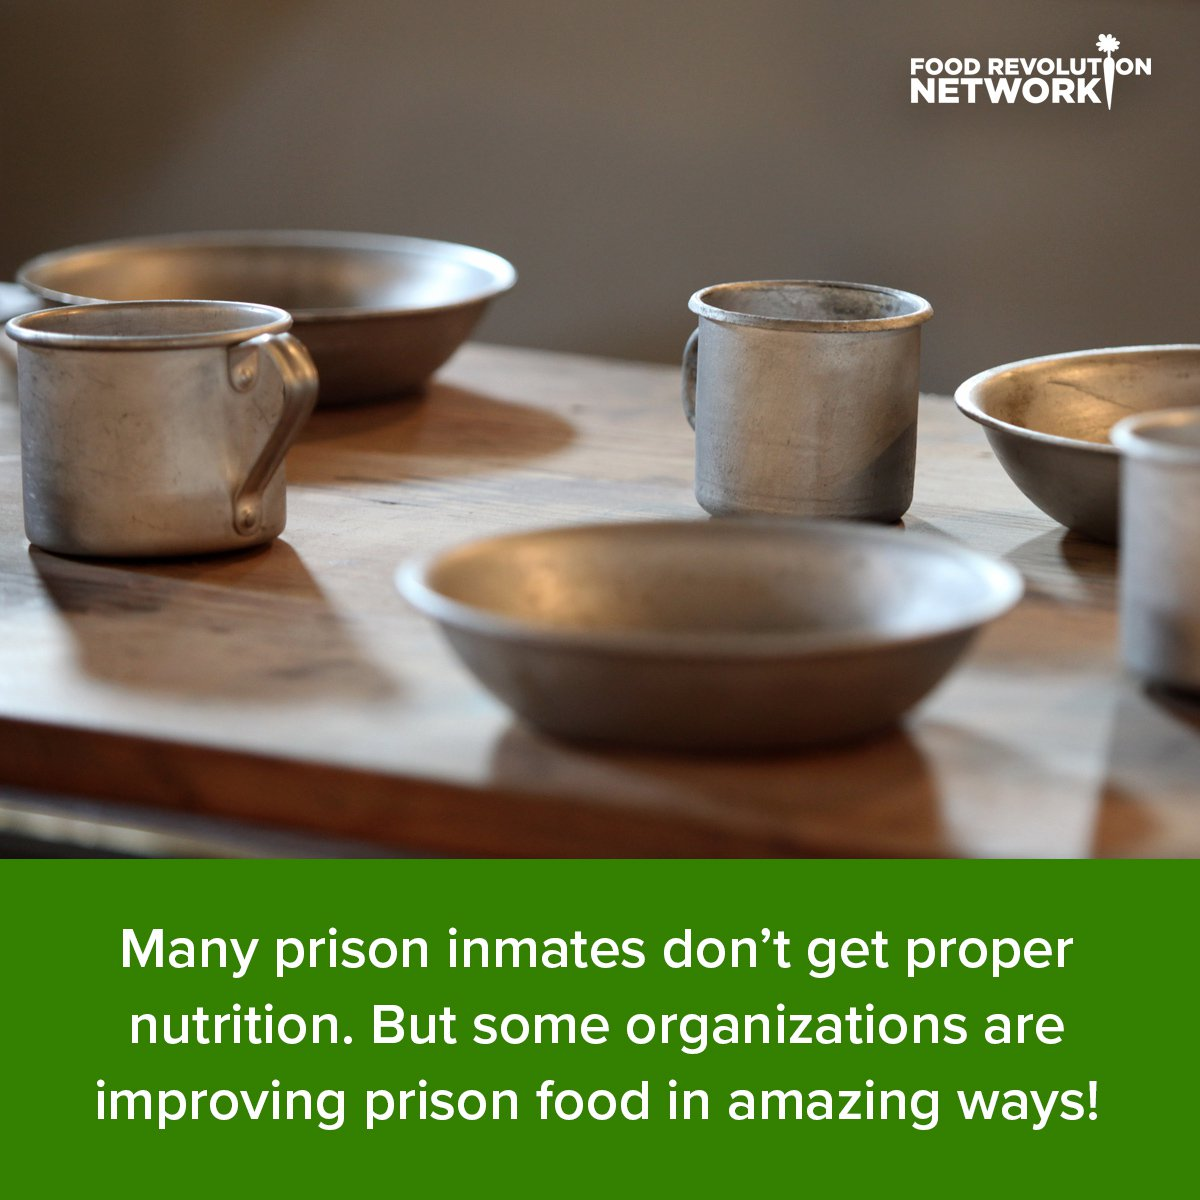 Many prison inmates don't get proper nutrition. But some organizations are improving prison food in amazing ways!